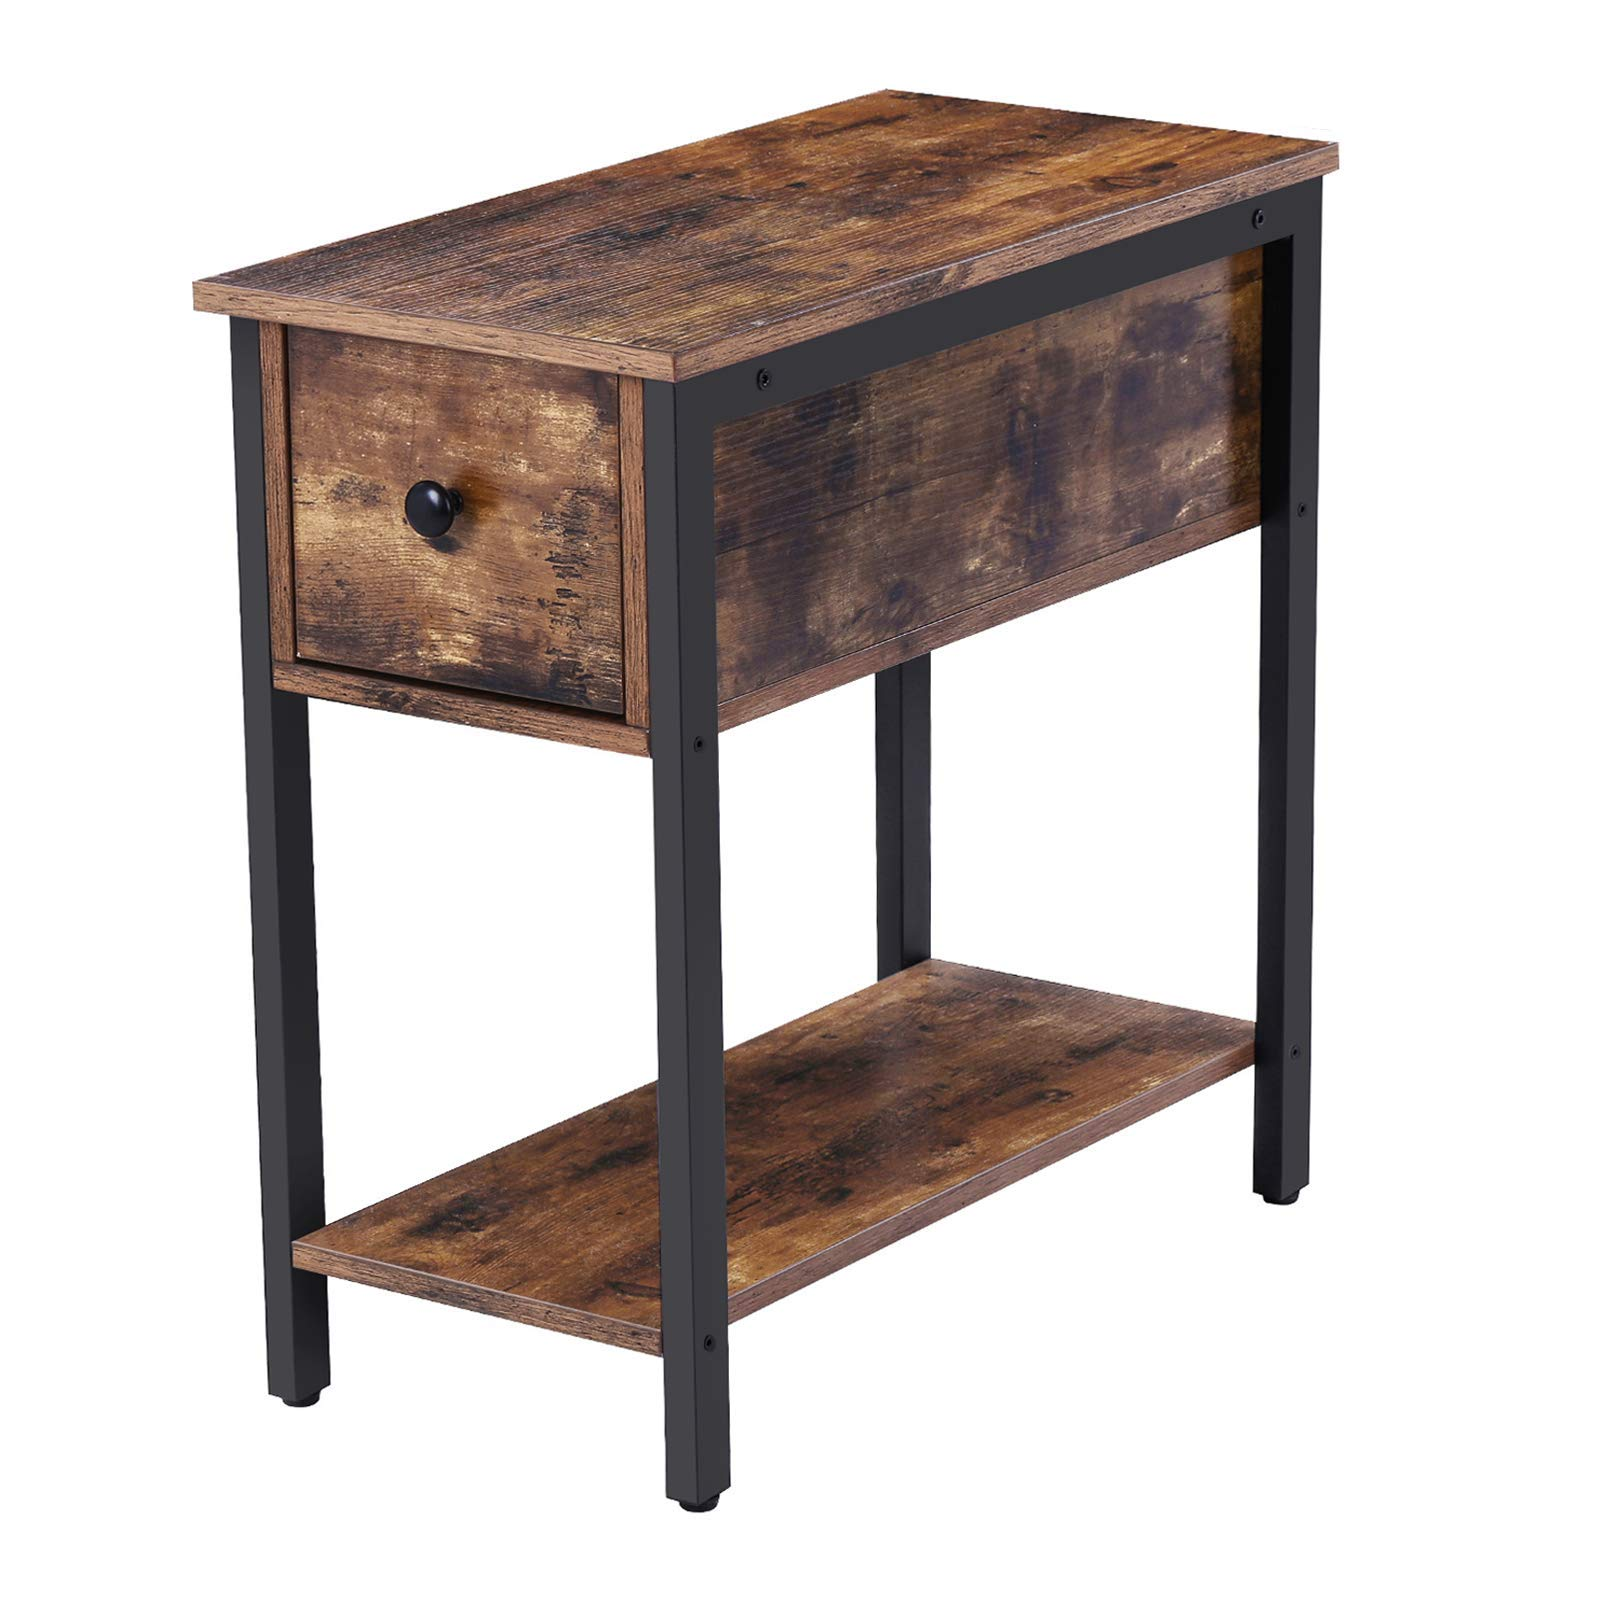 HOOBRO Side Table, 2-Tier Nightstand with Drawer, Narrow End Table for Small Spaces, Stable and Sturdy Construction, Wood Look Accent Furniture with Metal Frame, Rustic Brown by HOOBRO